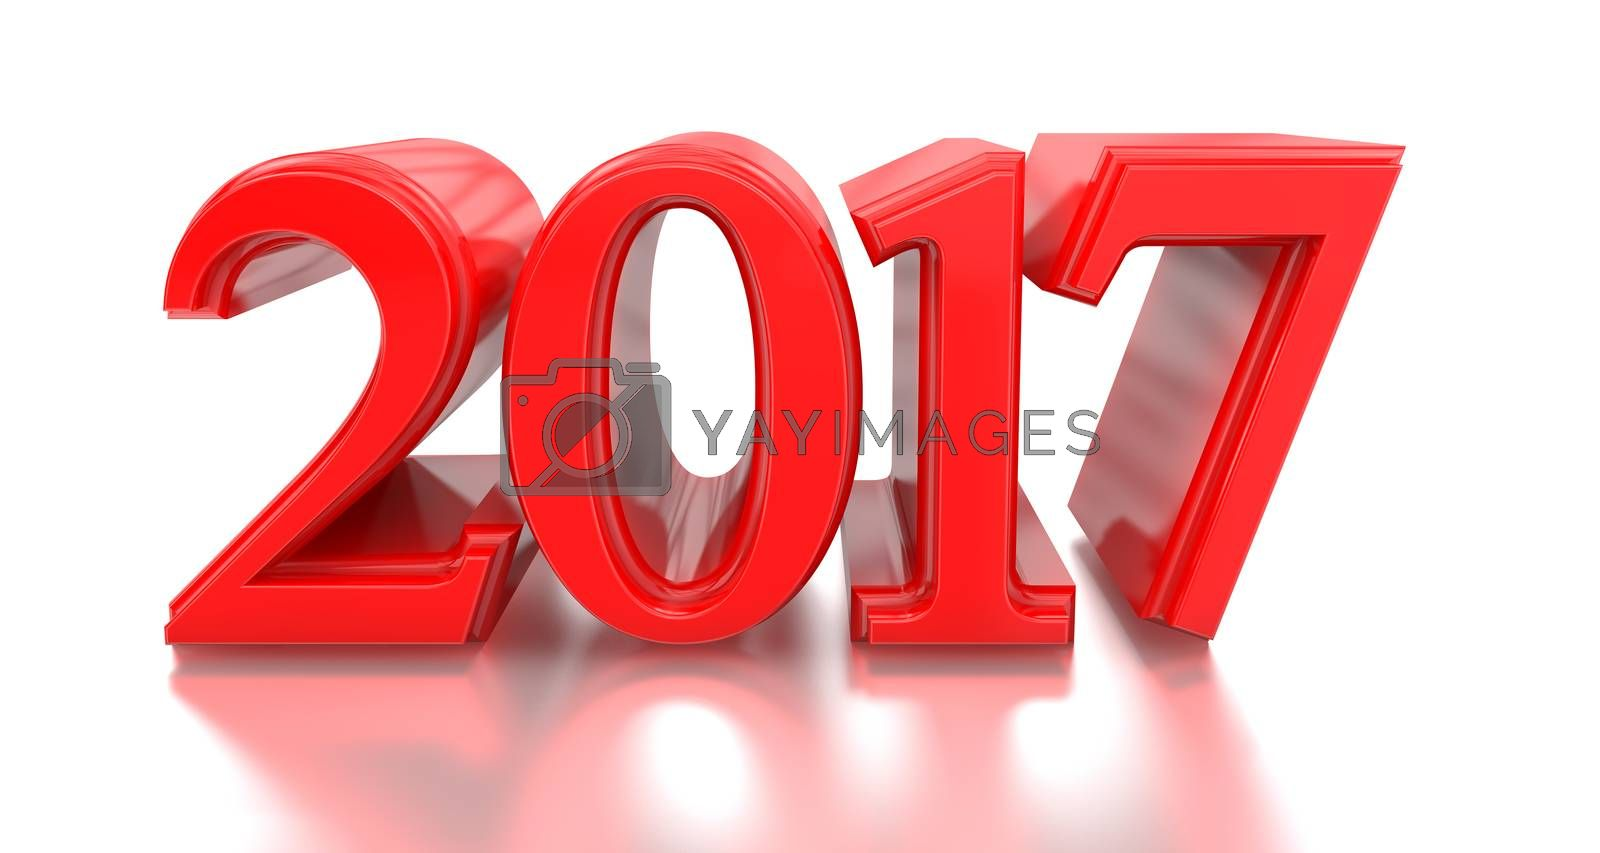 3d 2017. 2016-2017 change represents the new year 2017, three-dimensional rendering